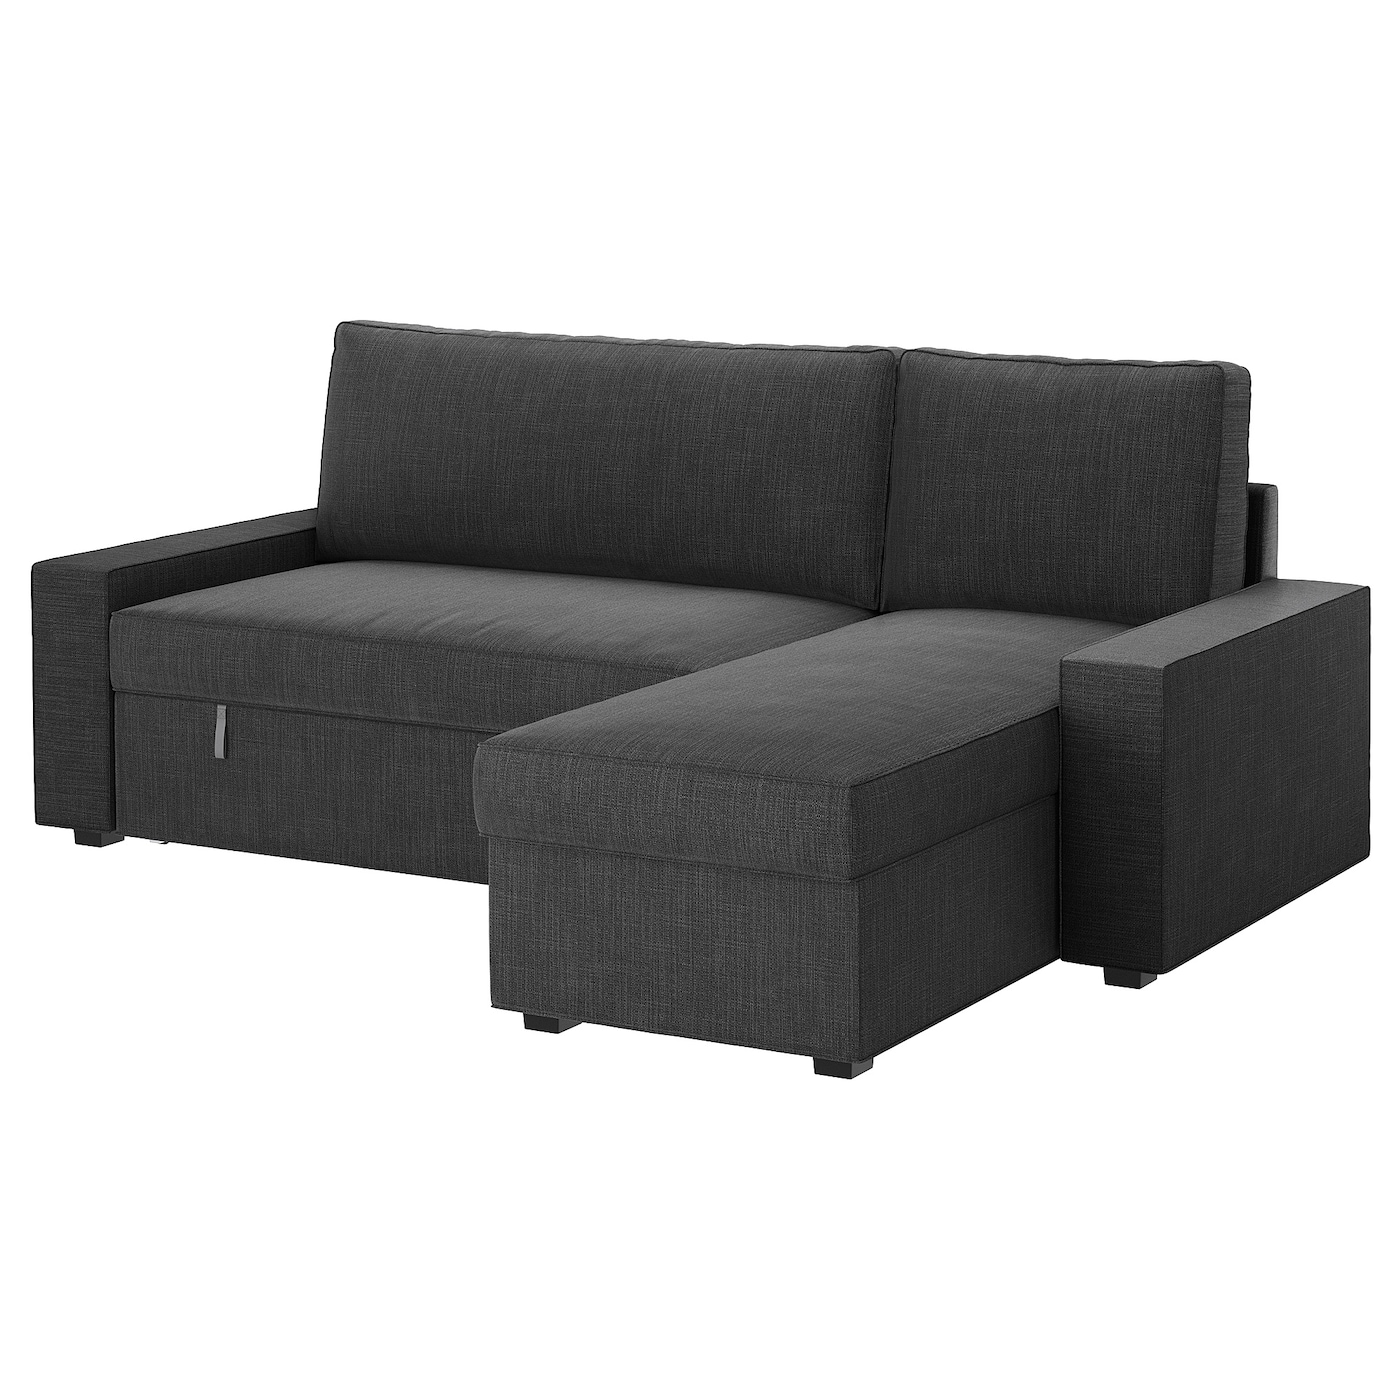 Vilasund Sofa Bed With Chaise Longue Hillared Anthracite